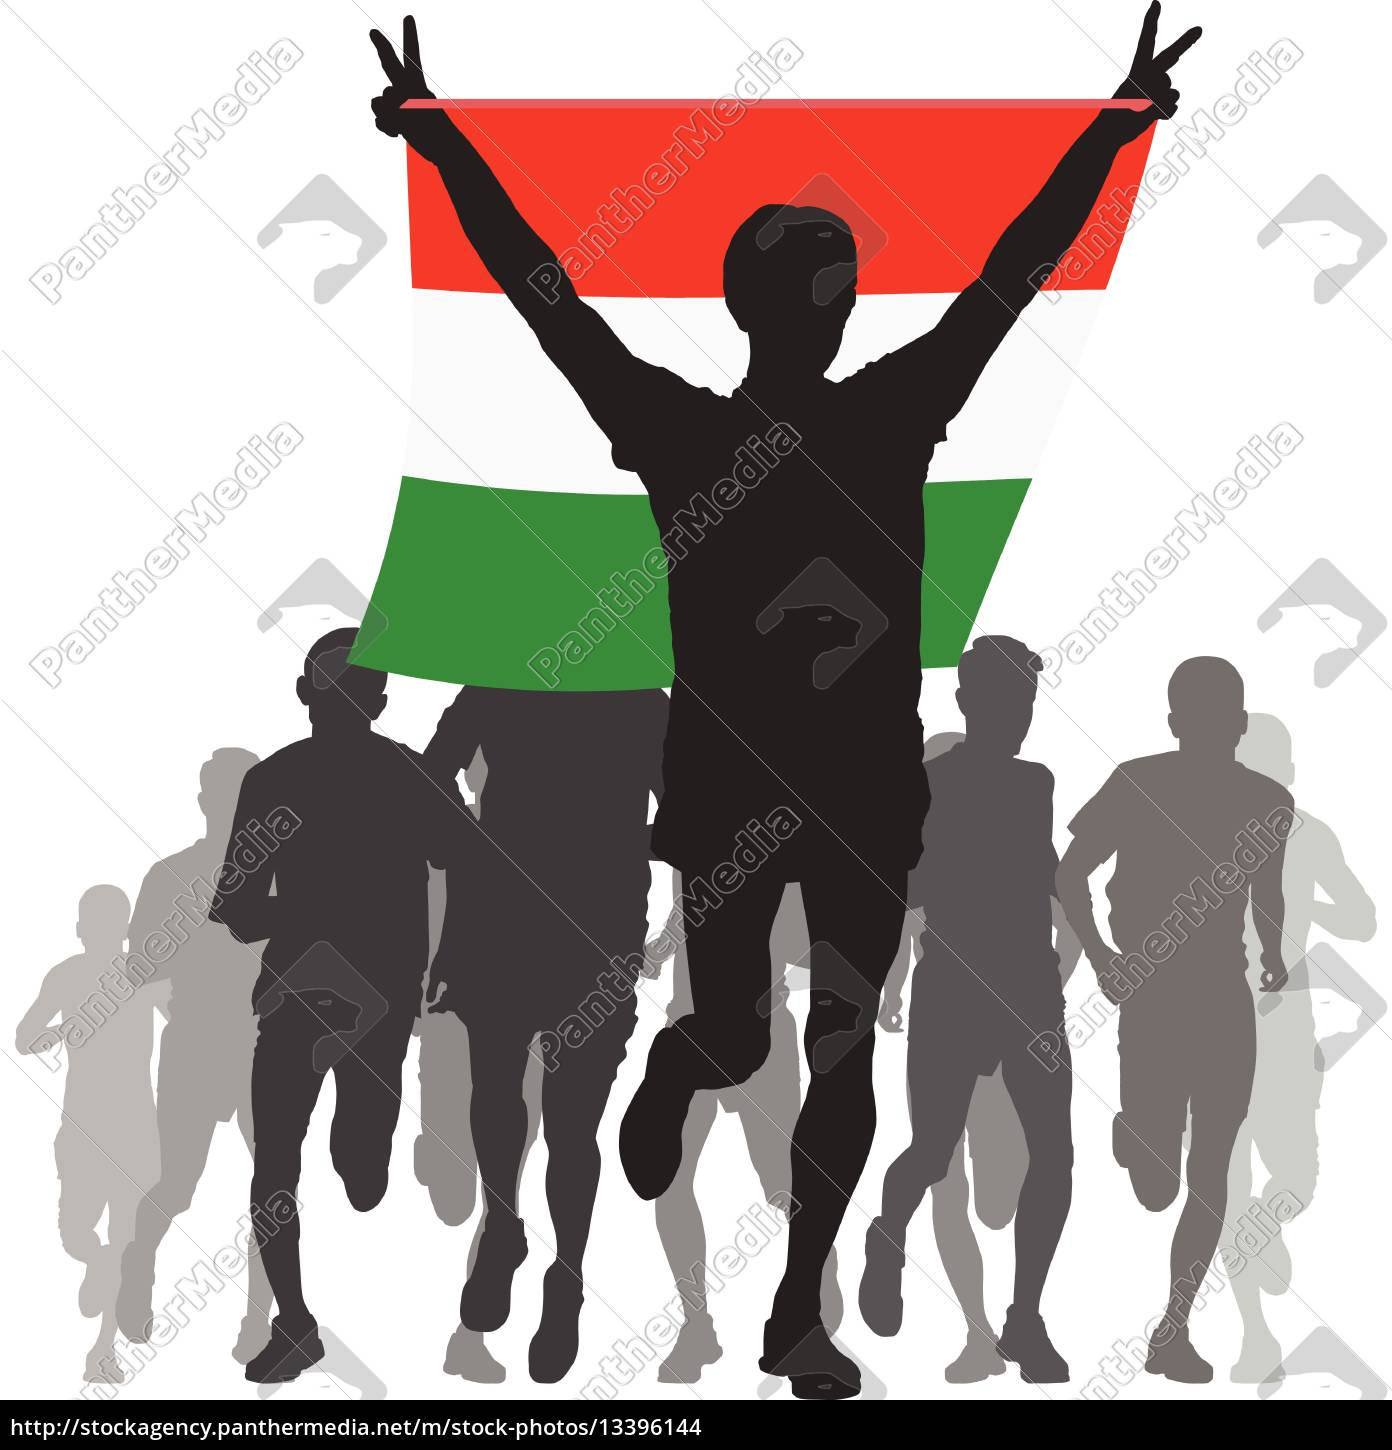 athlete, with, the, hungary, flag, at - 13396144